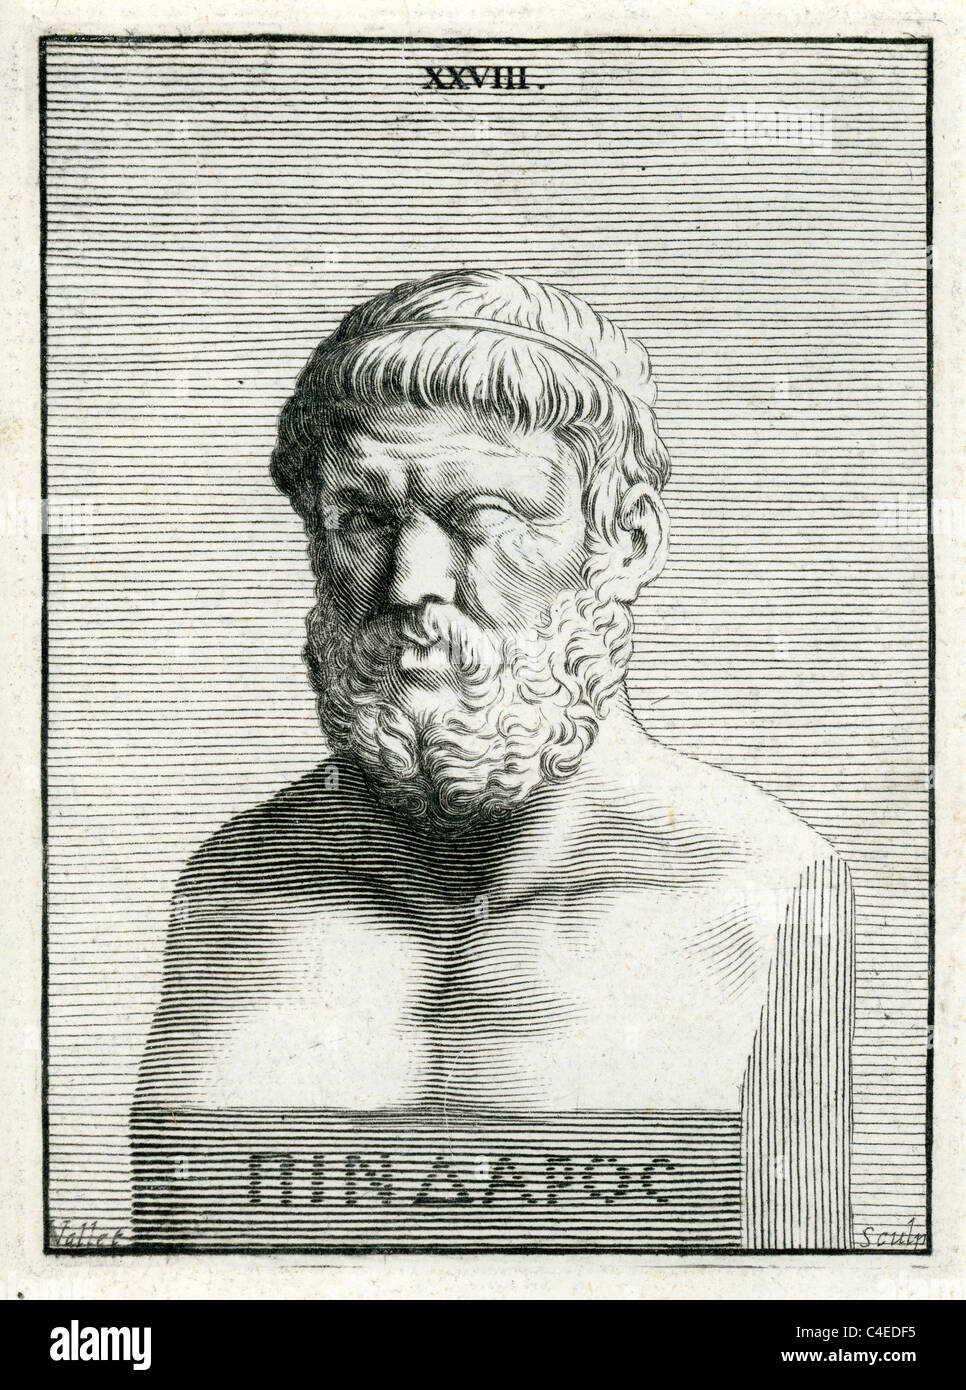 Classical portrait of Homer the author of the Iliad and the Odyssey, and is revered as the greatest ancient Greek - Stock Image